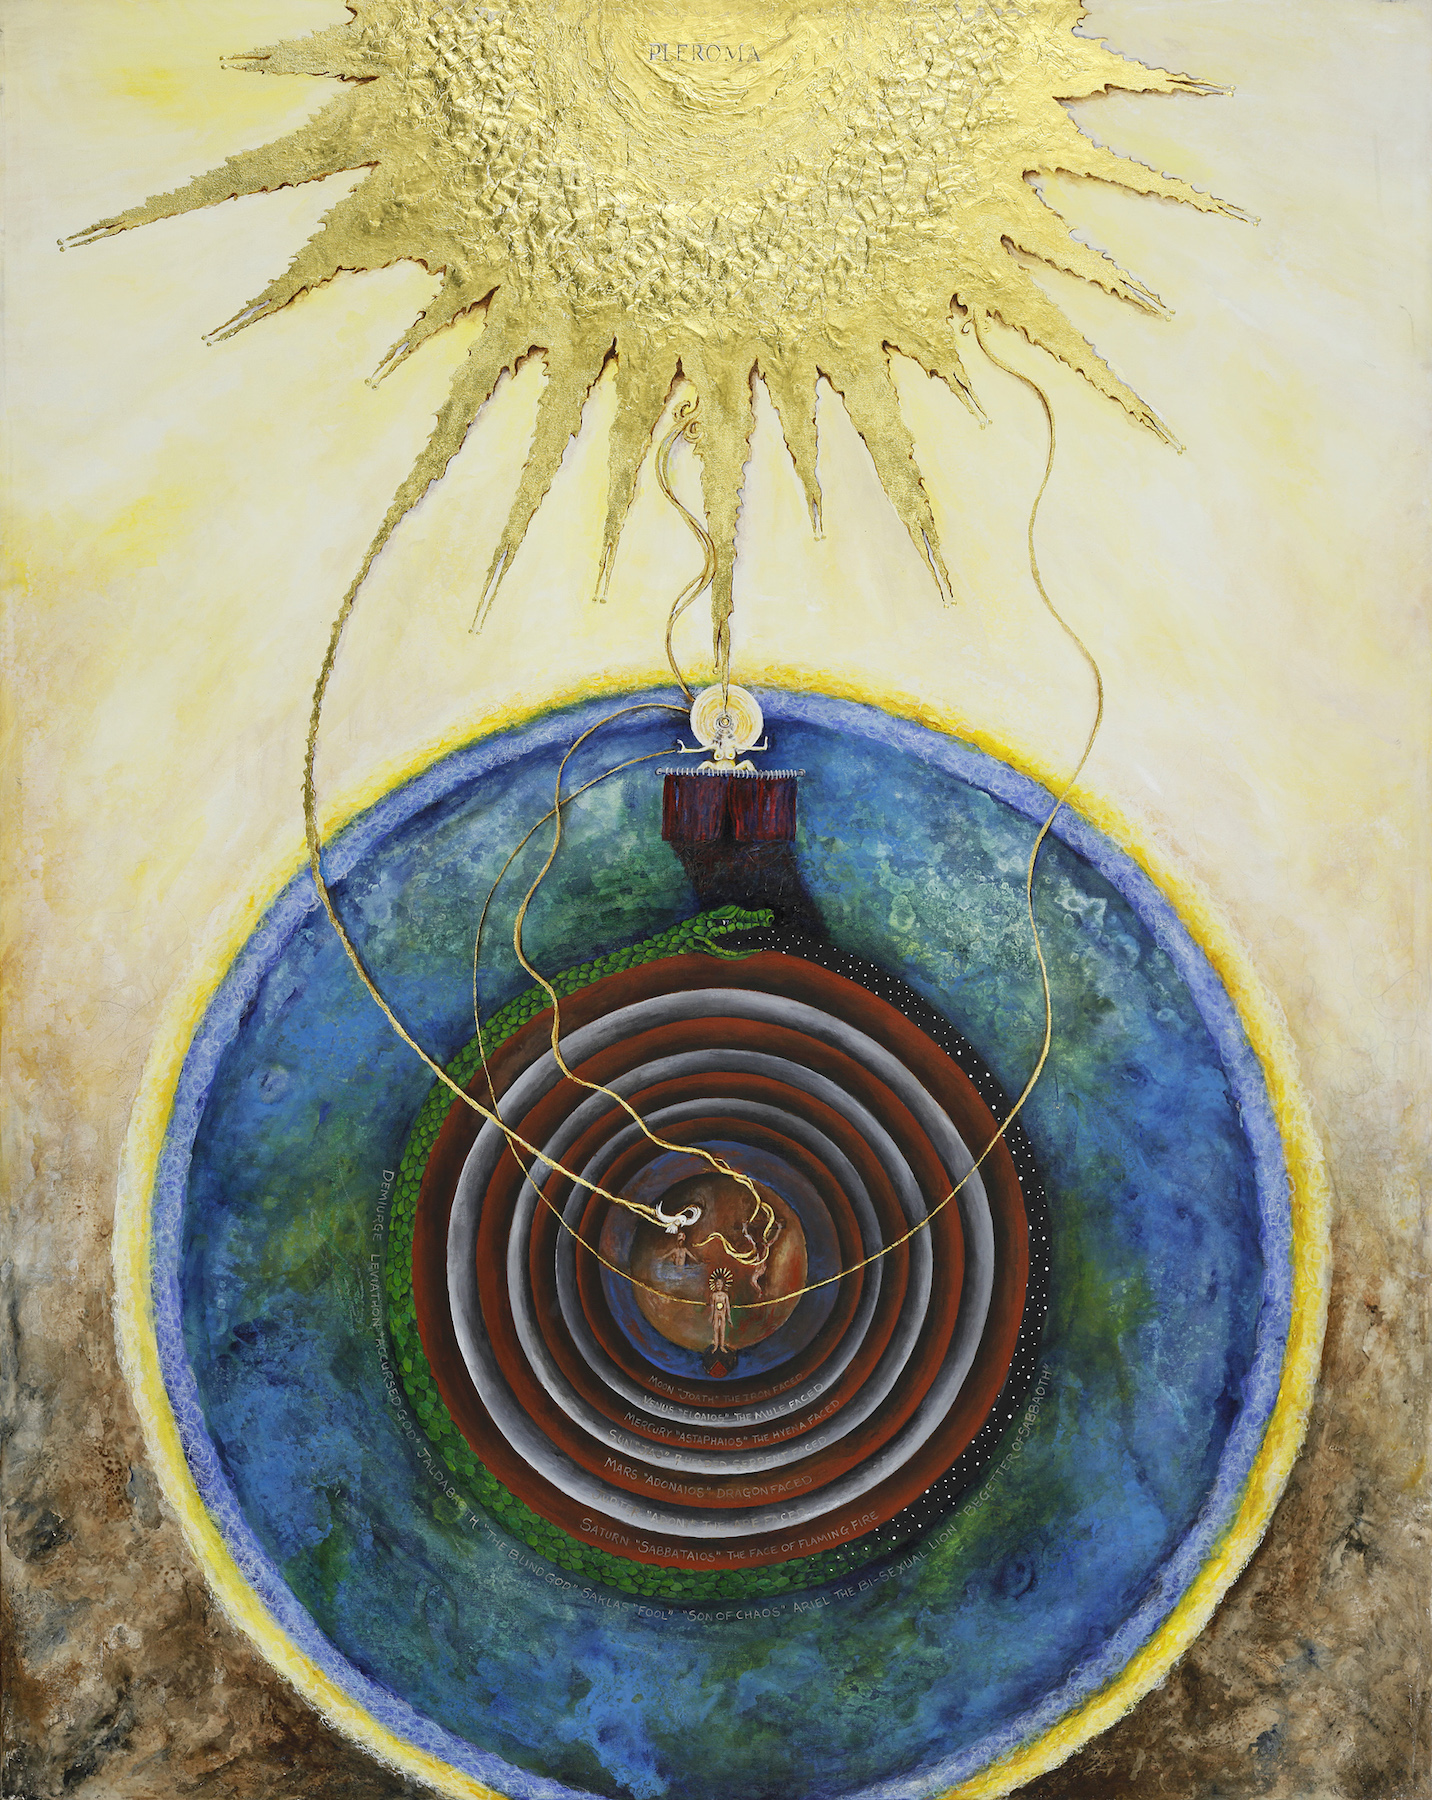 Conception of the Demi-urge -A study of the mysteries of the ancient religion of Gnosticism.